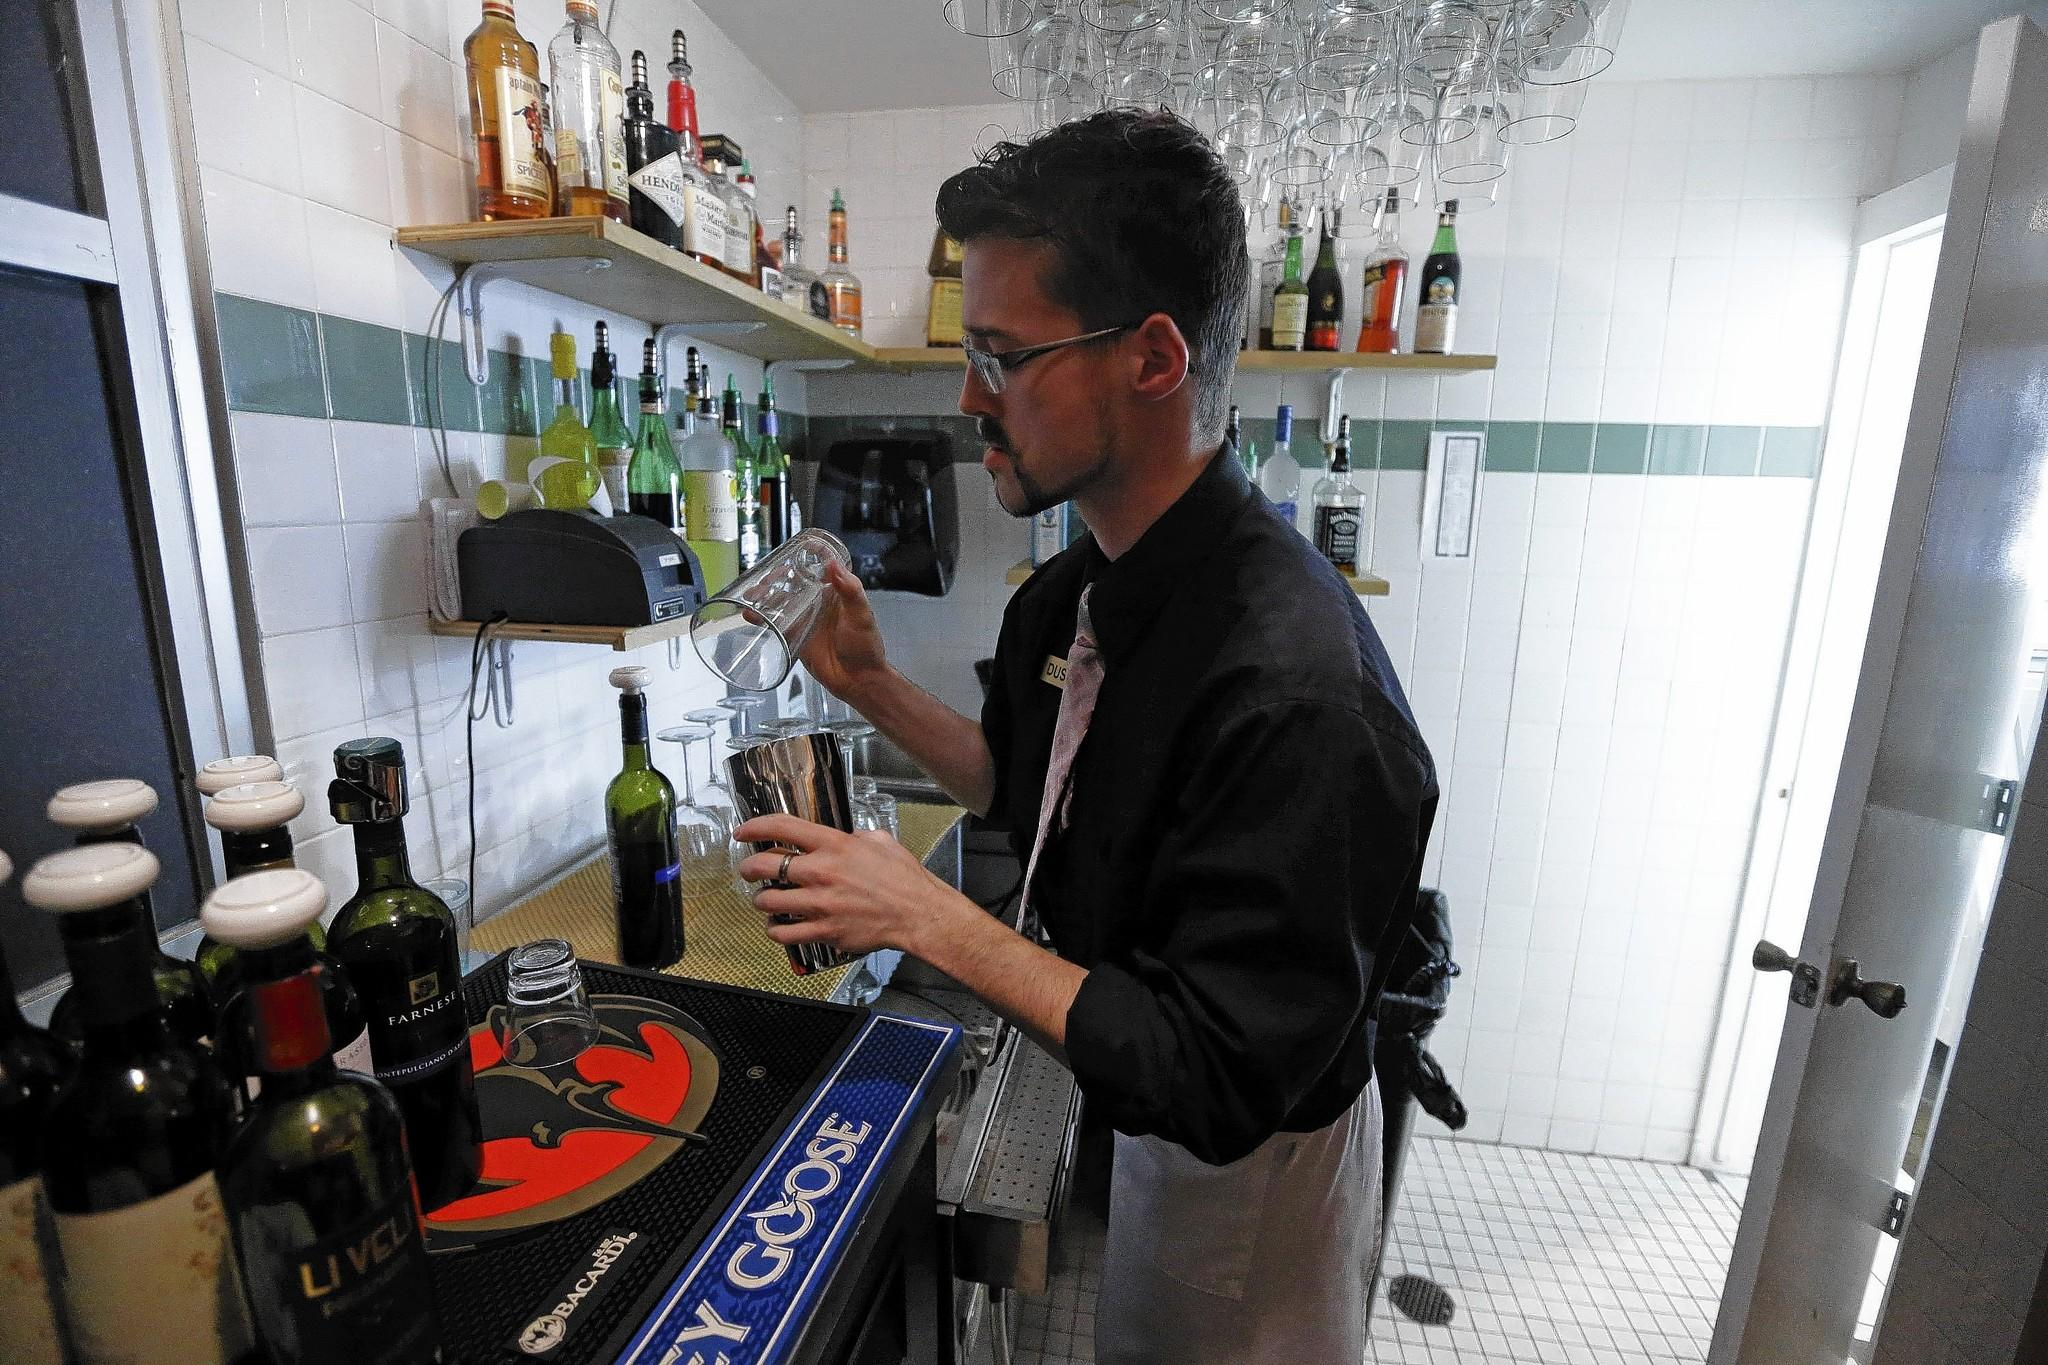 An Alcoholic Drink Is Prepared Out Of View Of Customers, In Compliance With  State Law